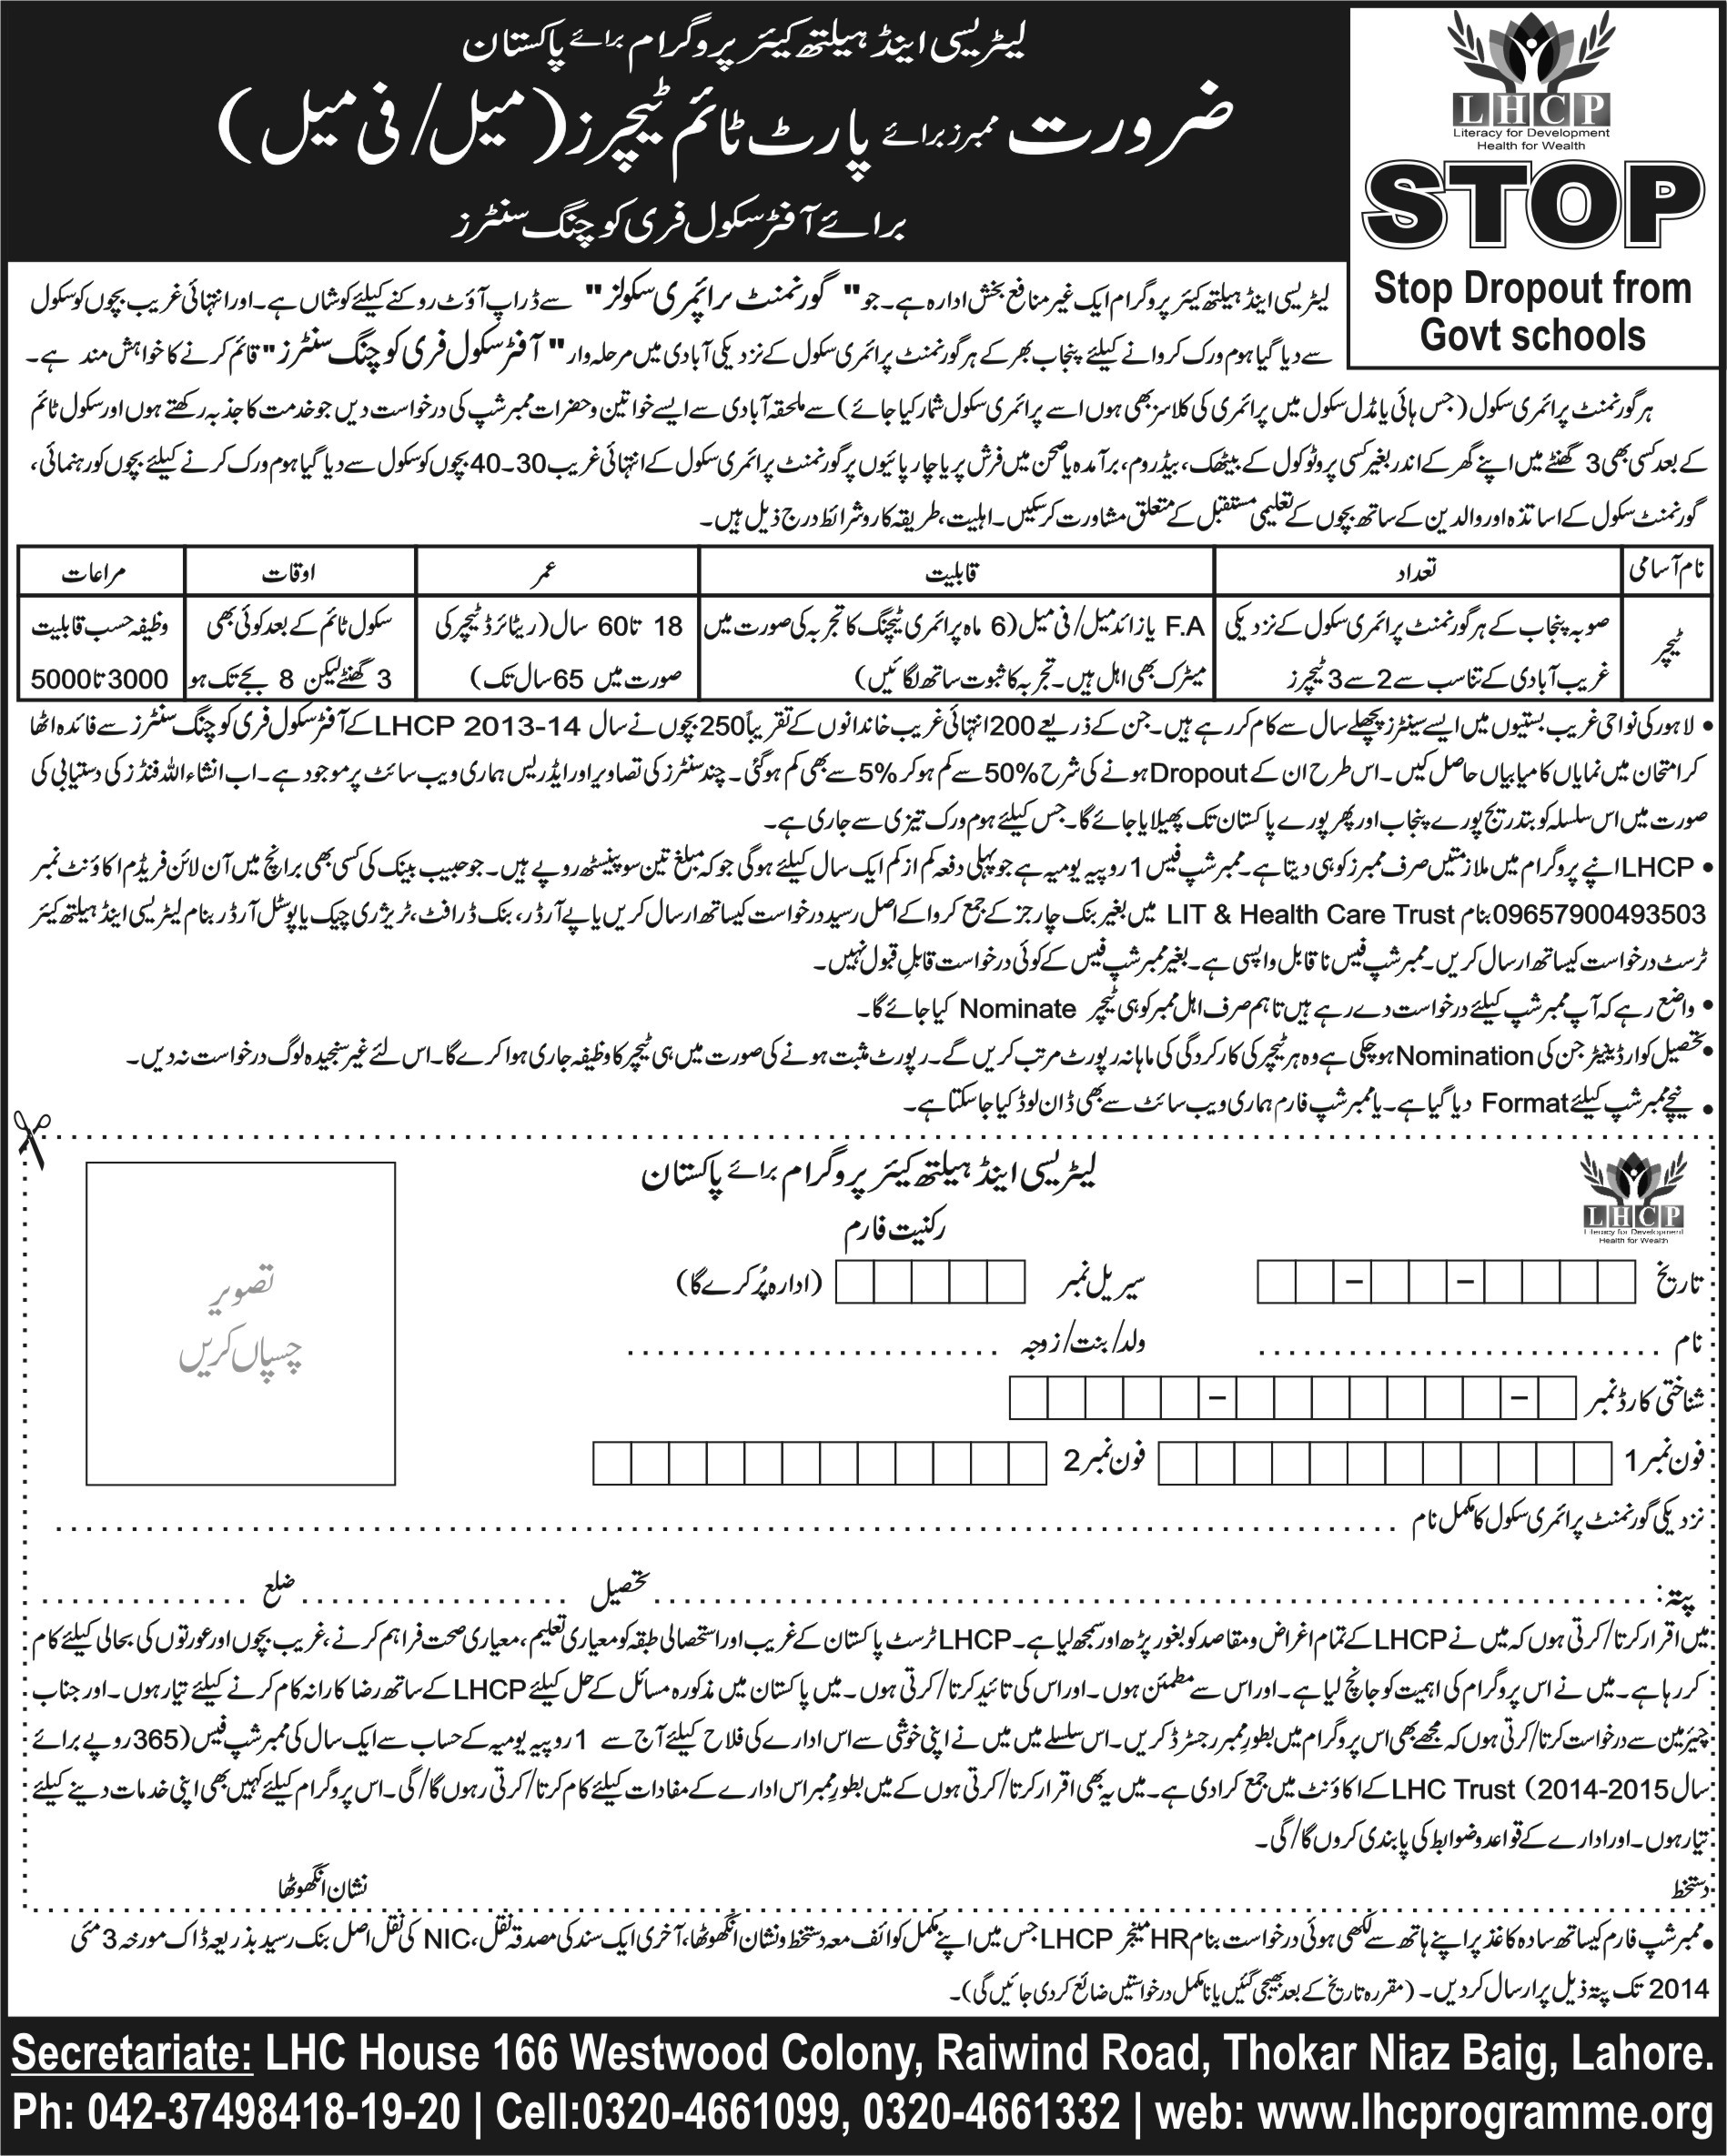 Jobs of Part Time Teachers-Literacy & Health Care Programme for Pakistan